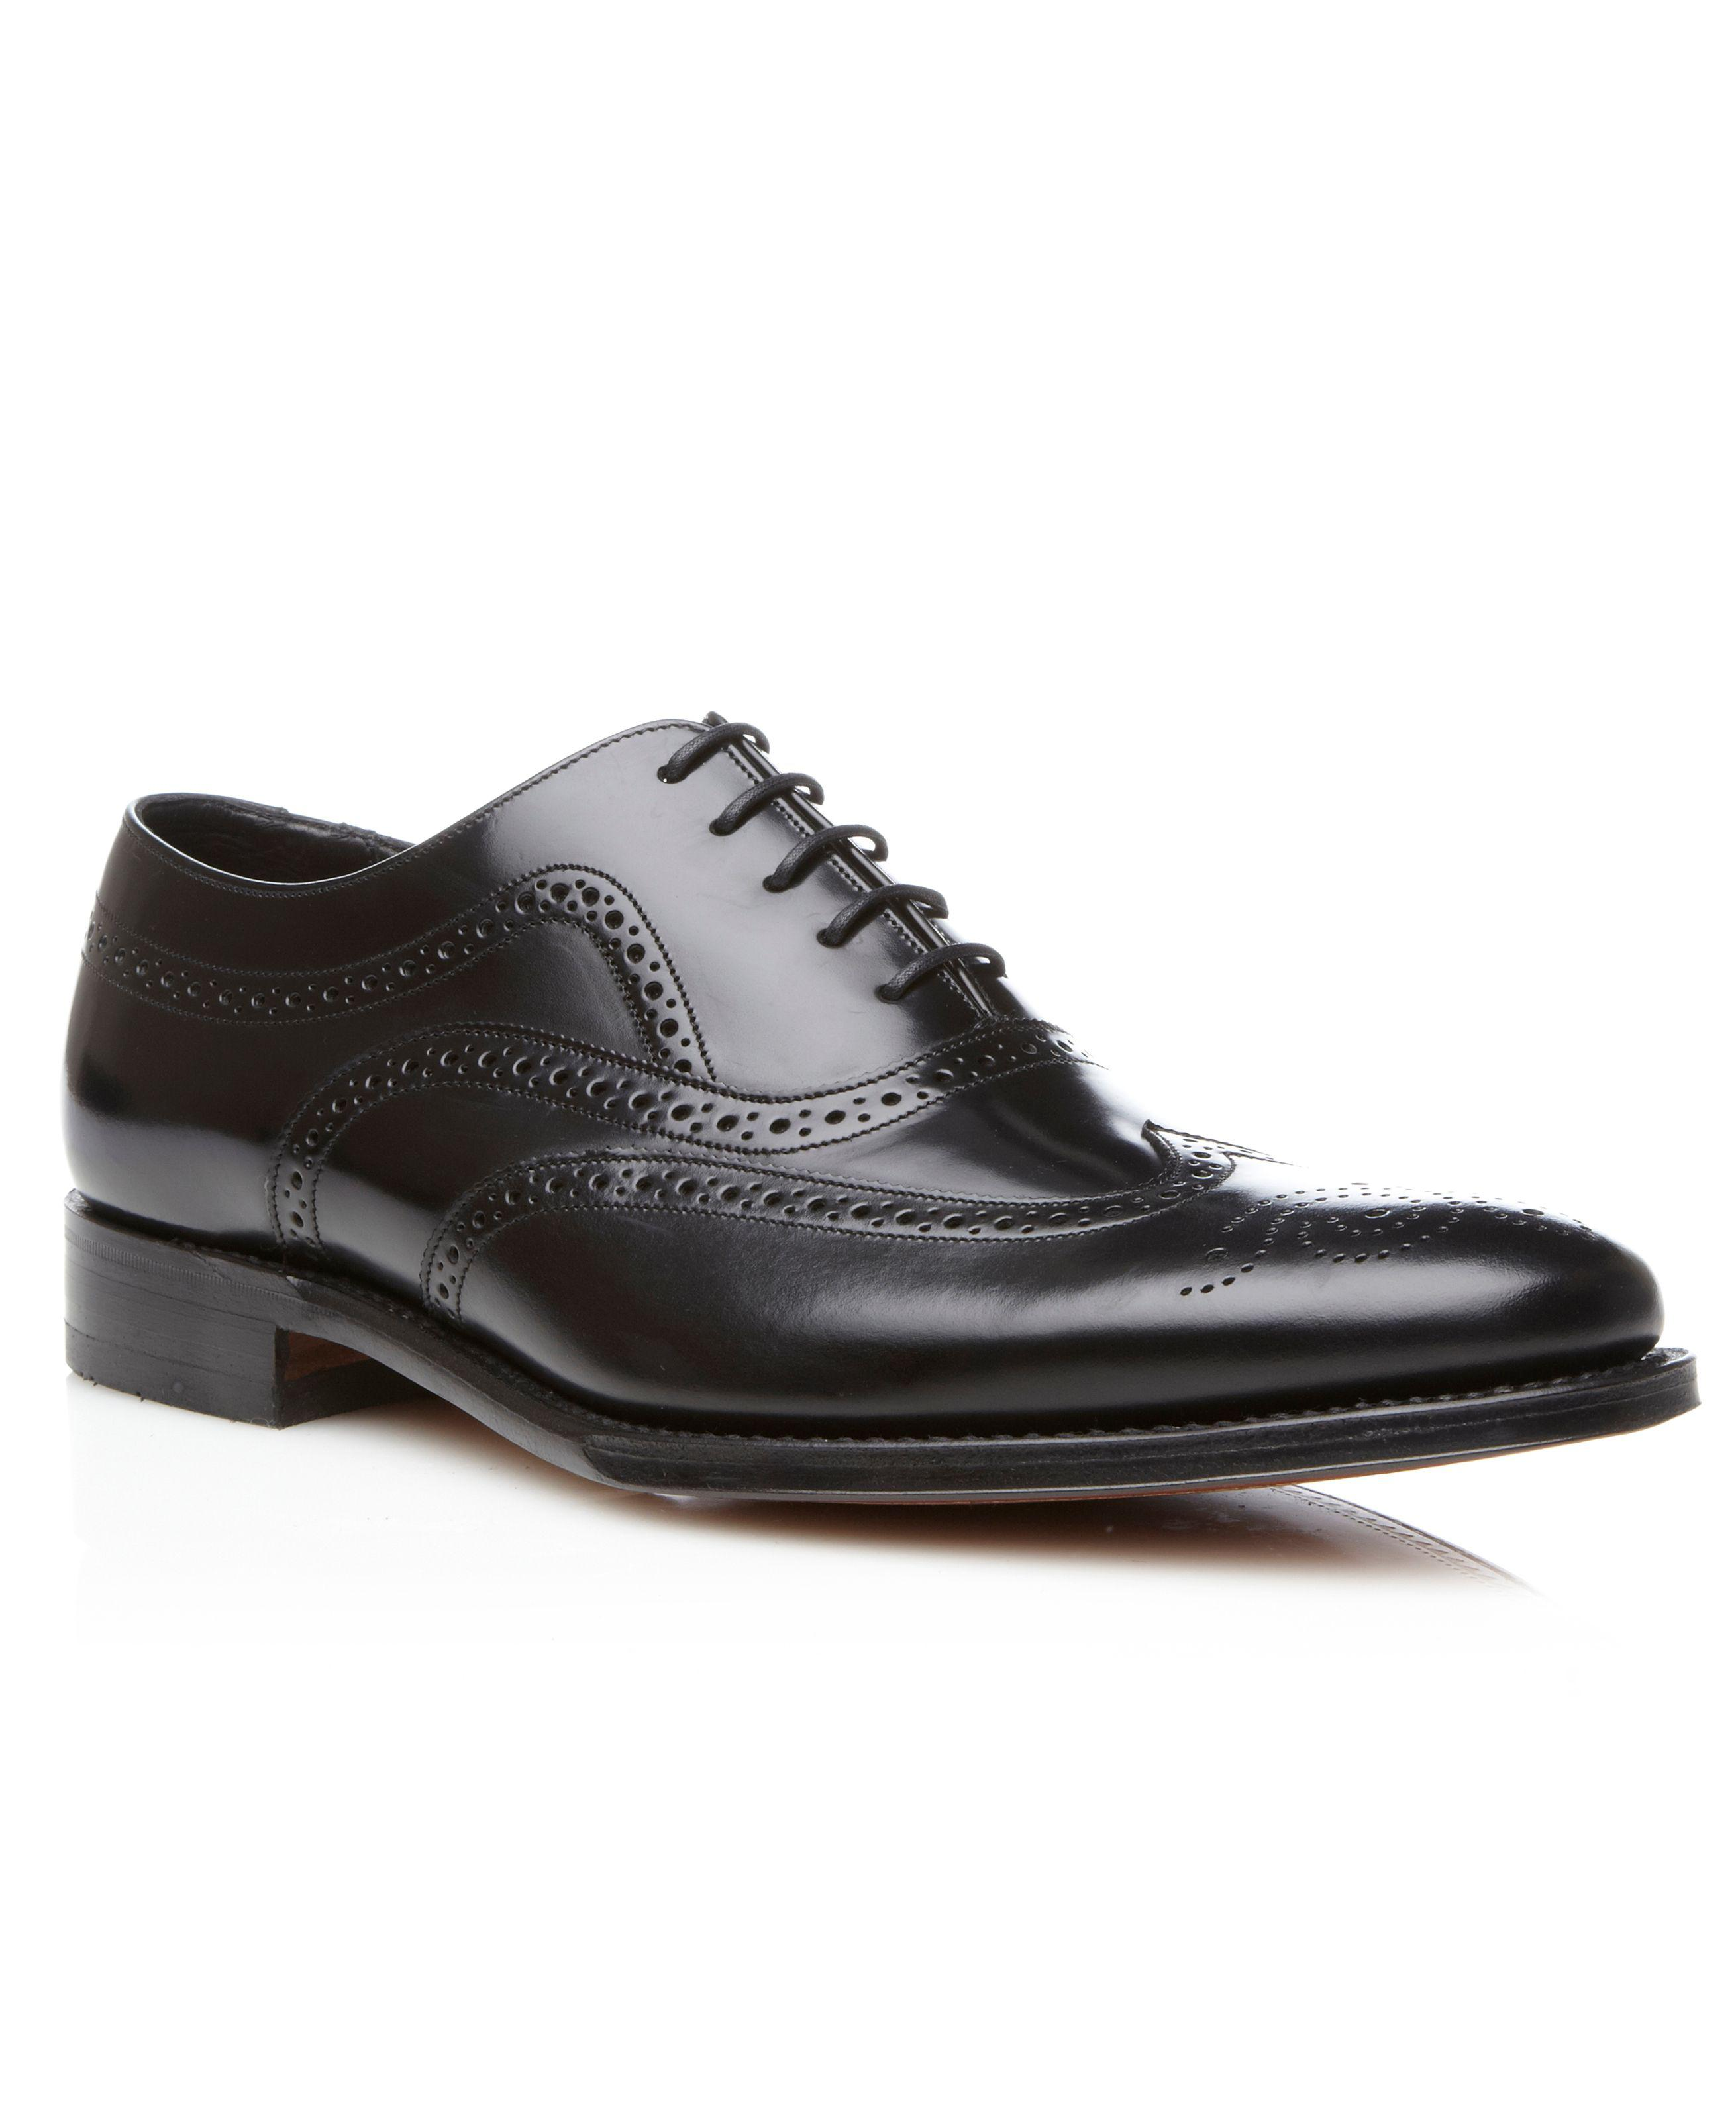 Black leather 'Lowick' brogues cheap Manchester Inexpensive sale online nRcSP5aniR